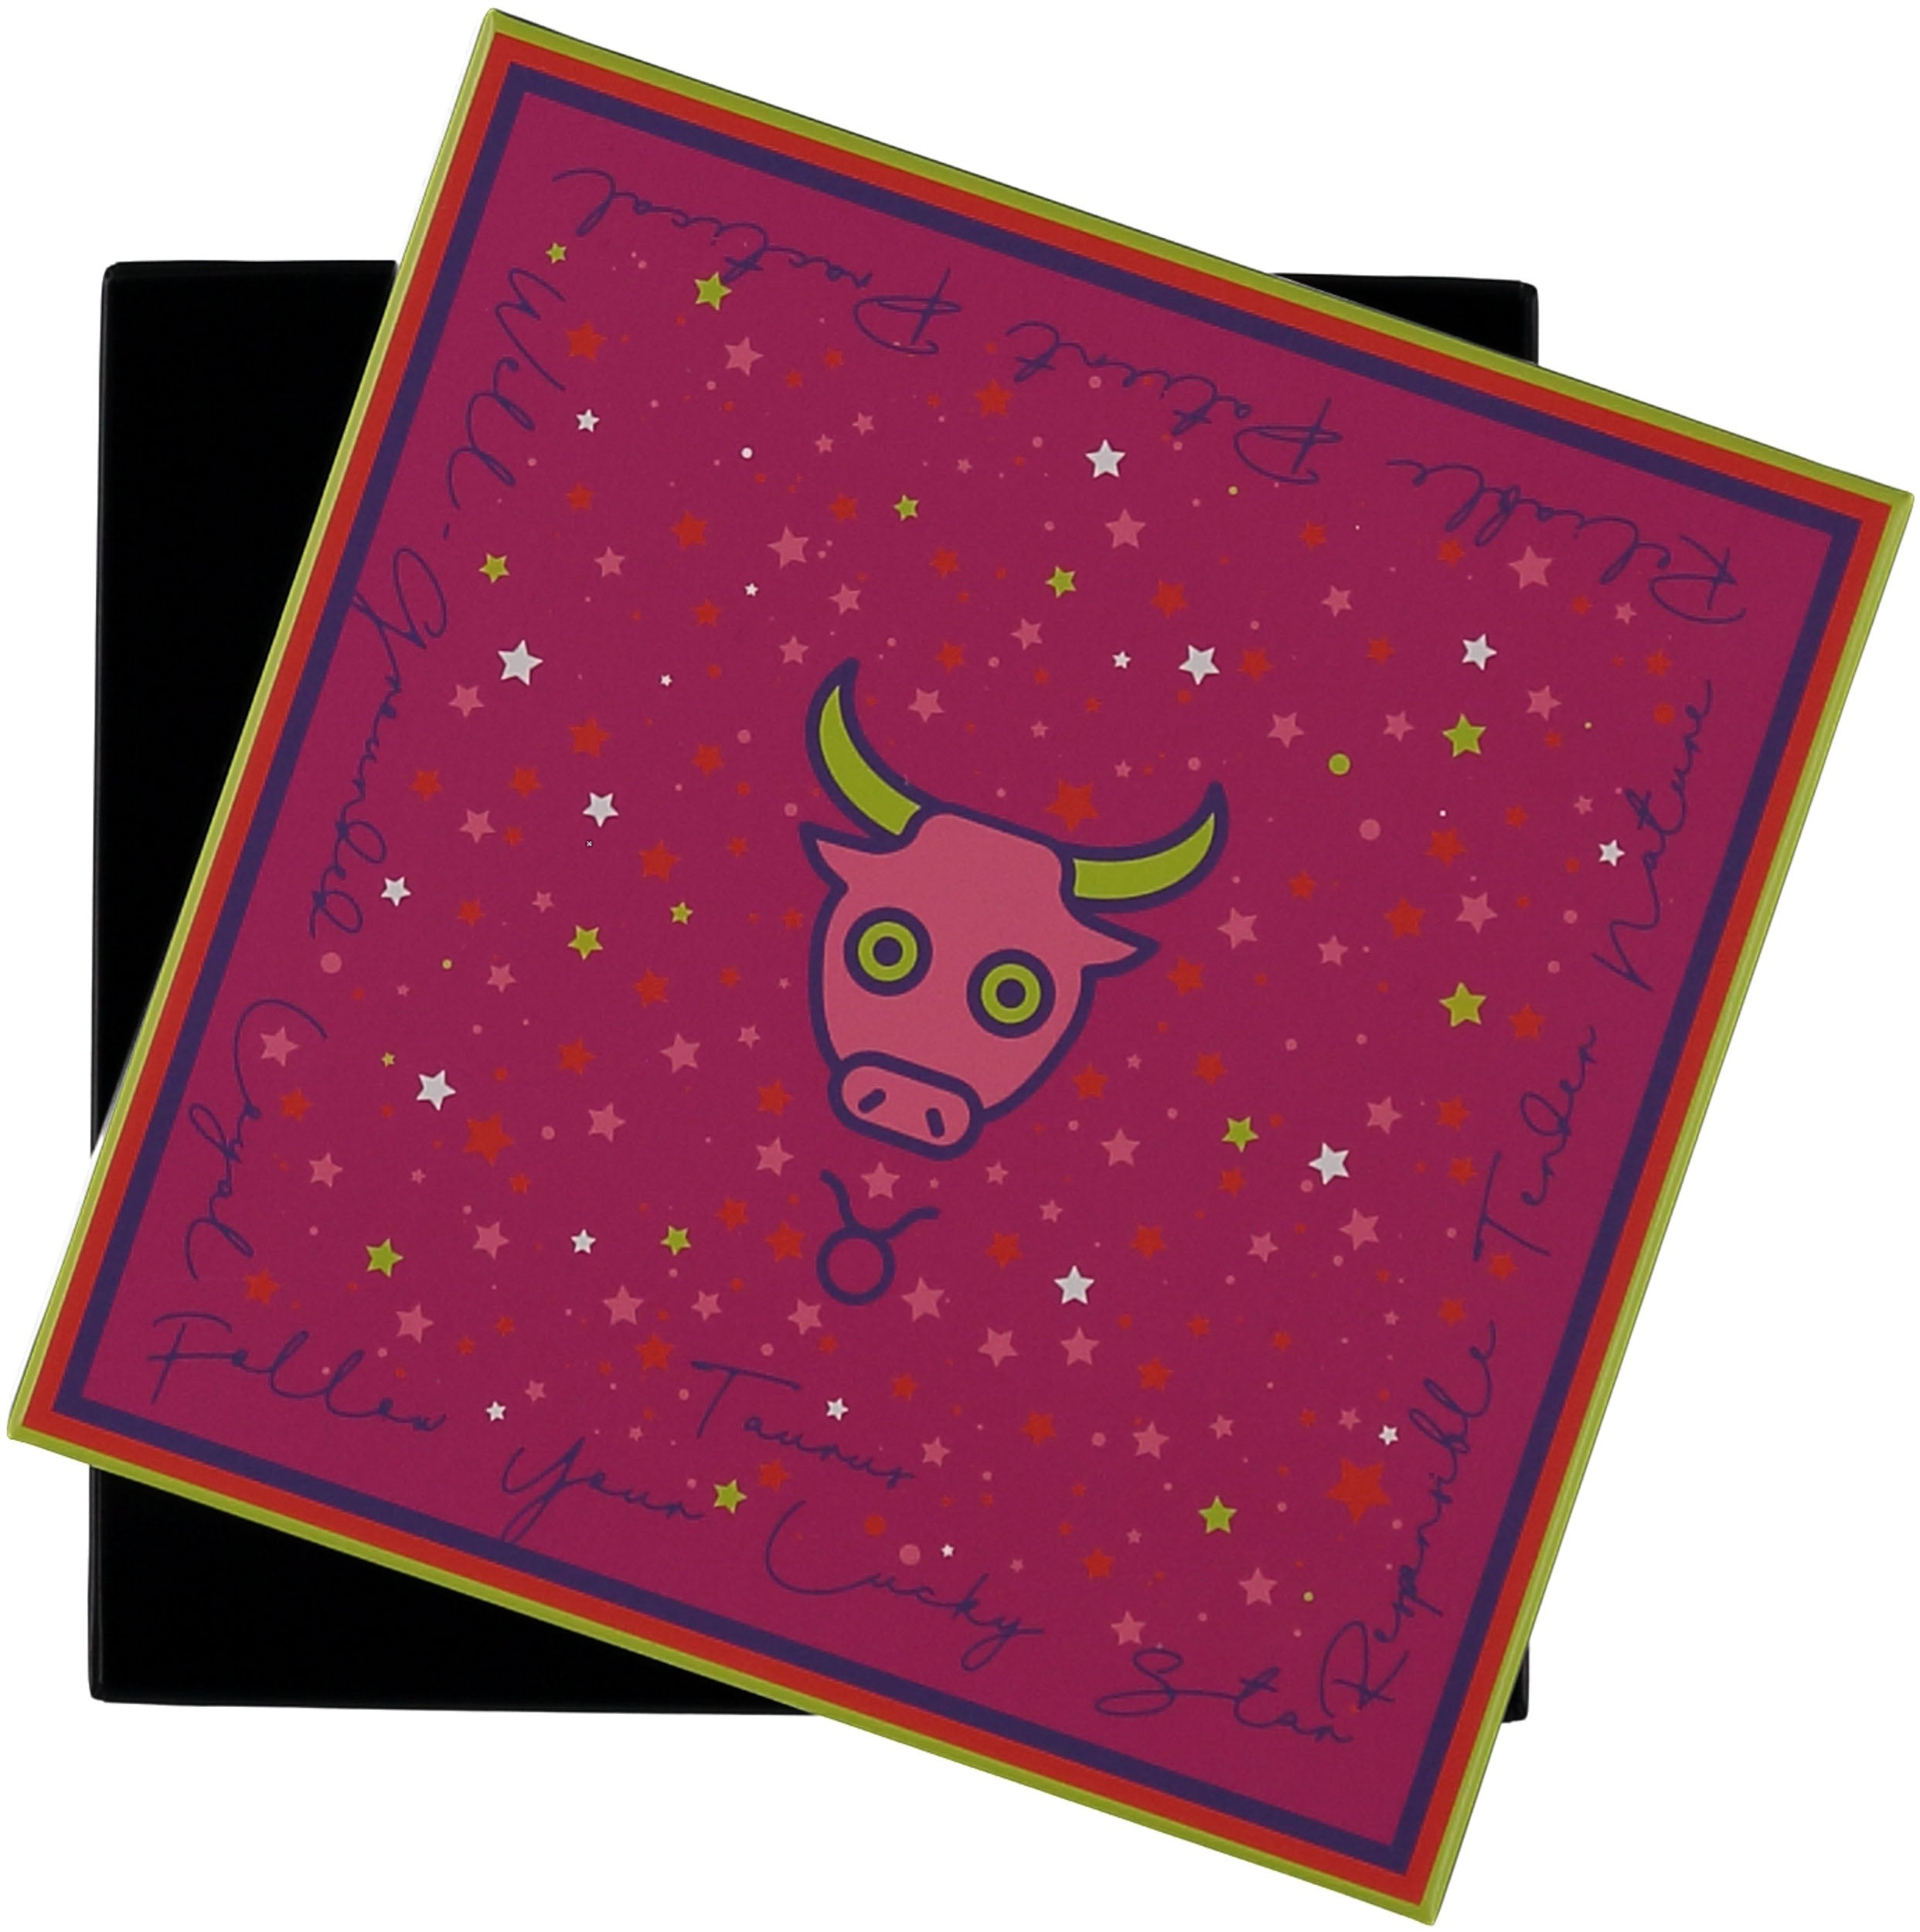 Taurus Cotton Silk Square Printed Neckie in Gift Box